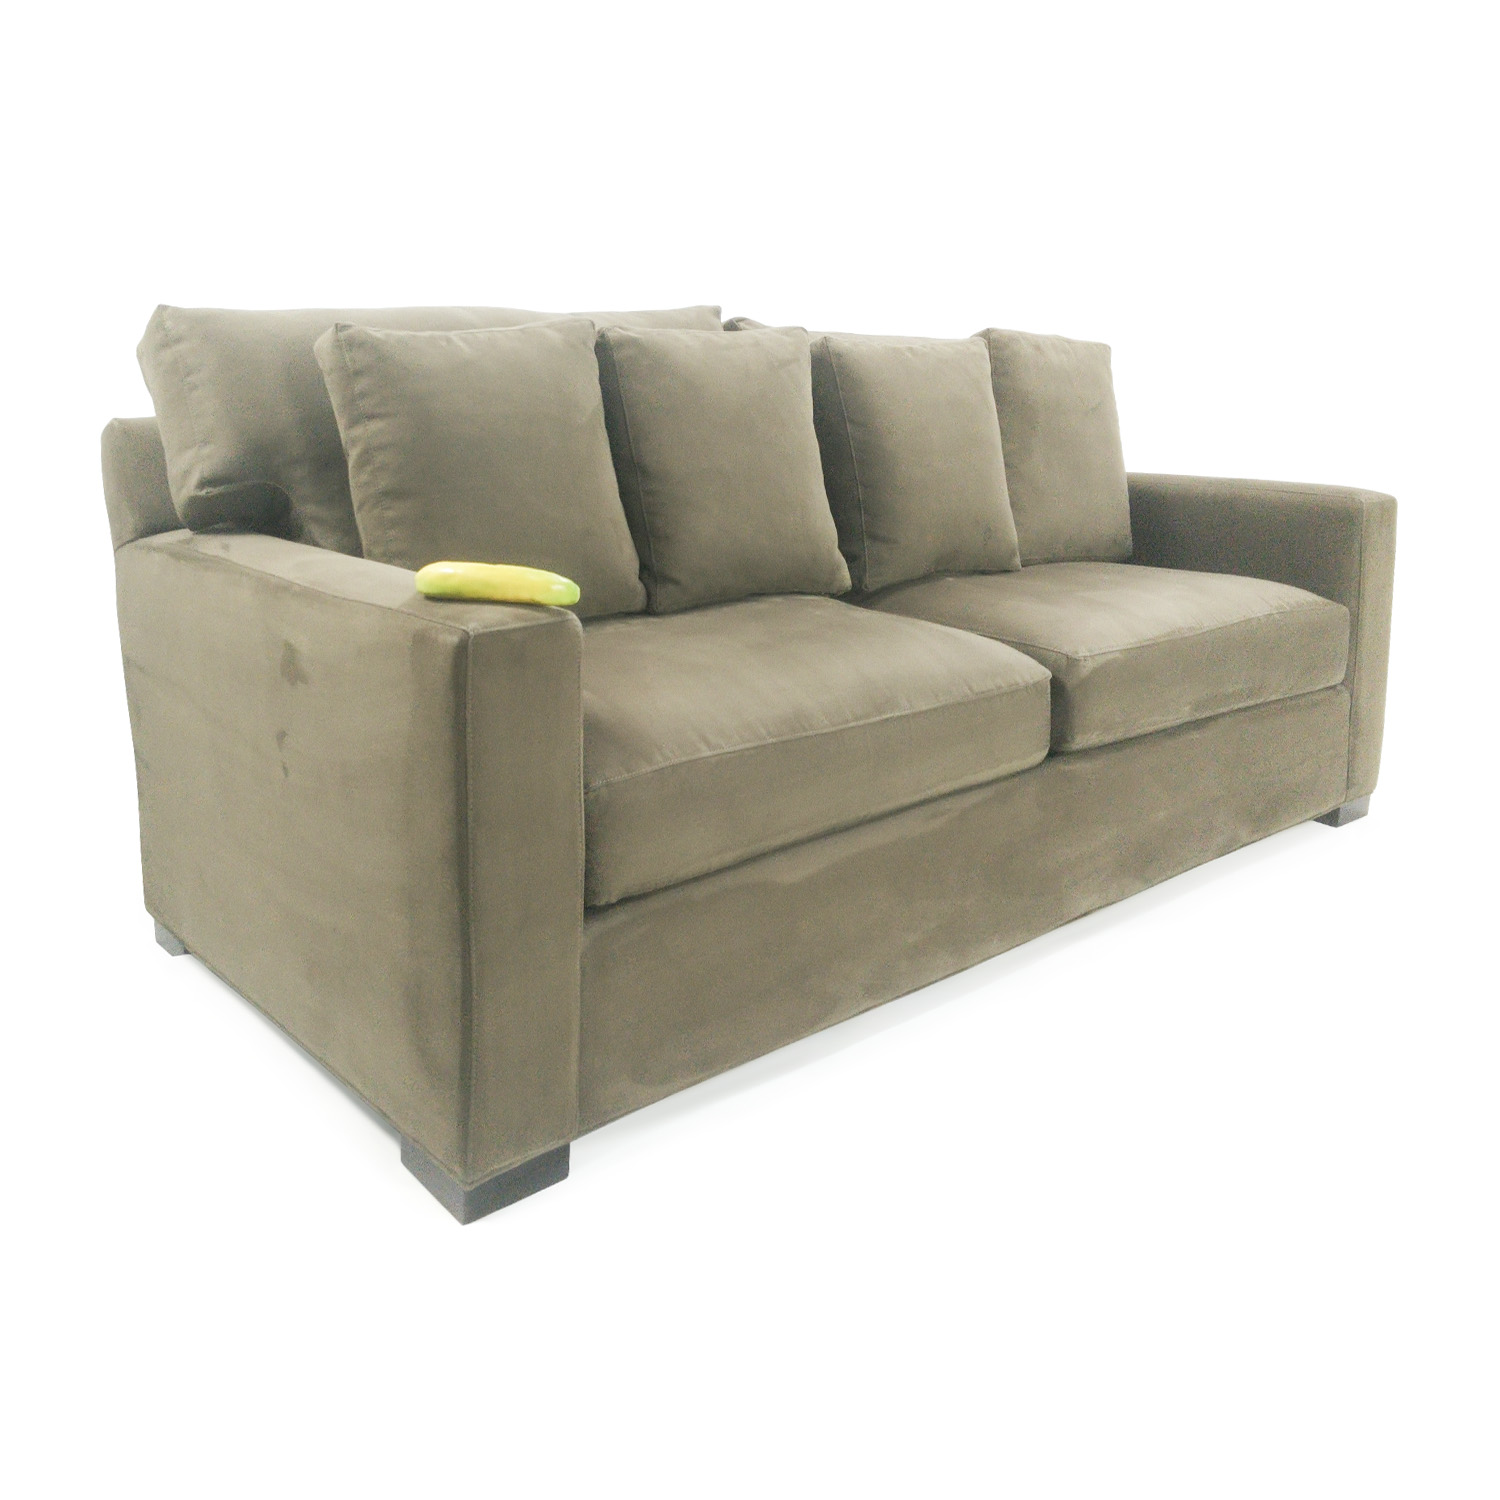 ... Crate And Barrel Crate U0026 Barrel Axis II Seat Sofa Second ...